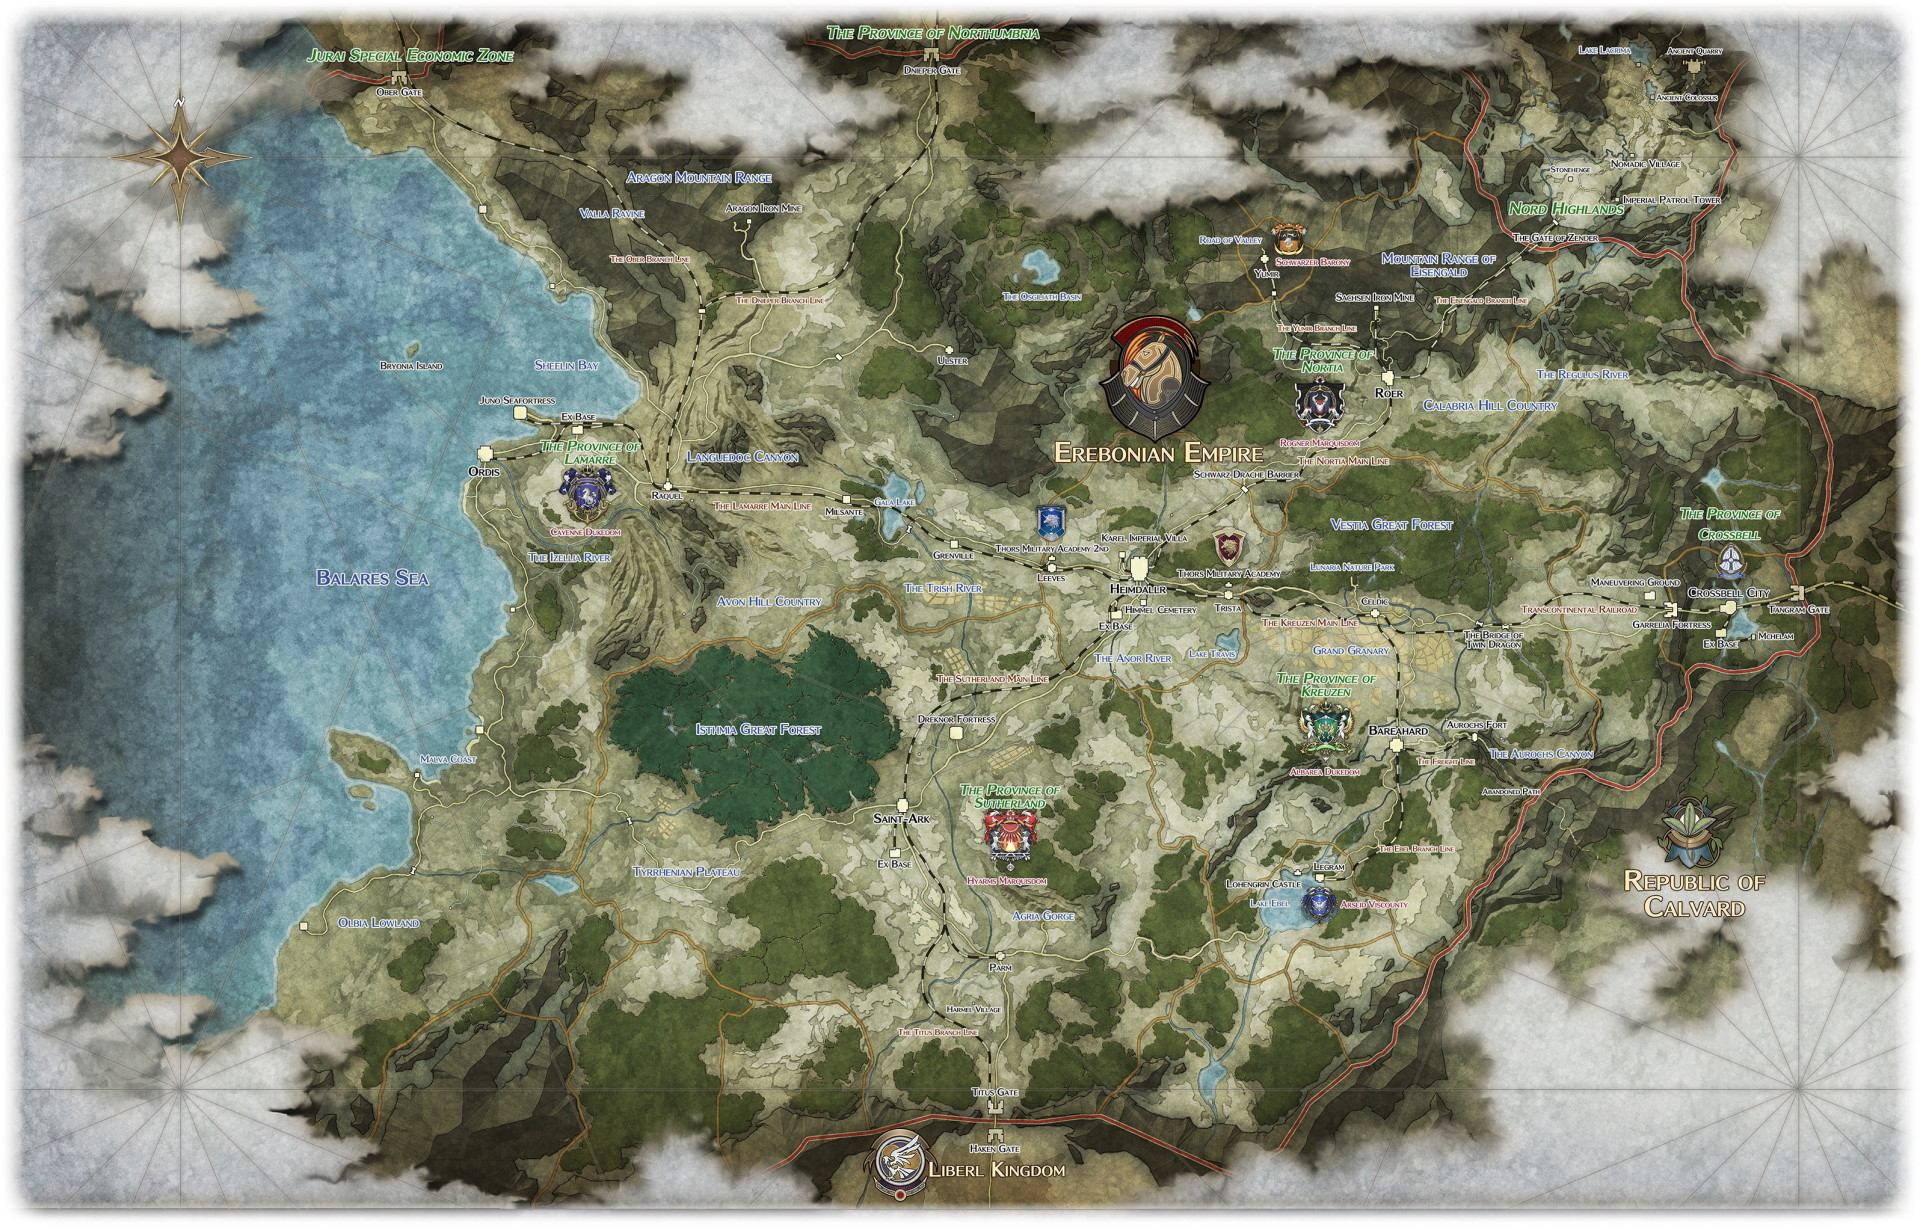 The Legend of Heroes - Un worldbuilding incredibile e ambizioso